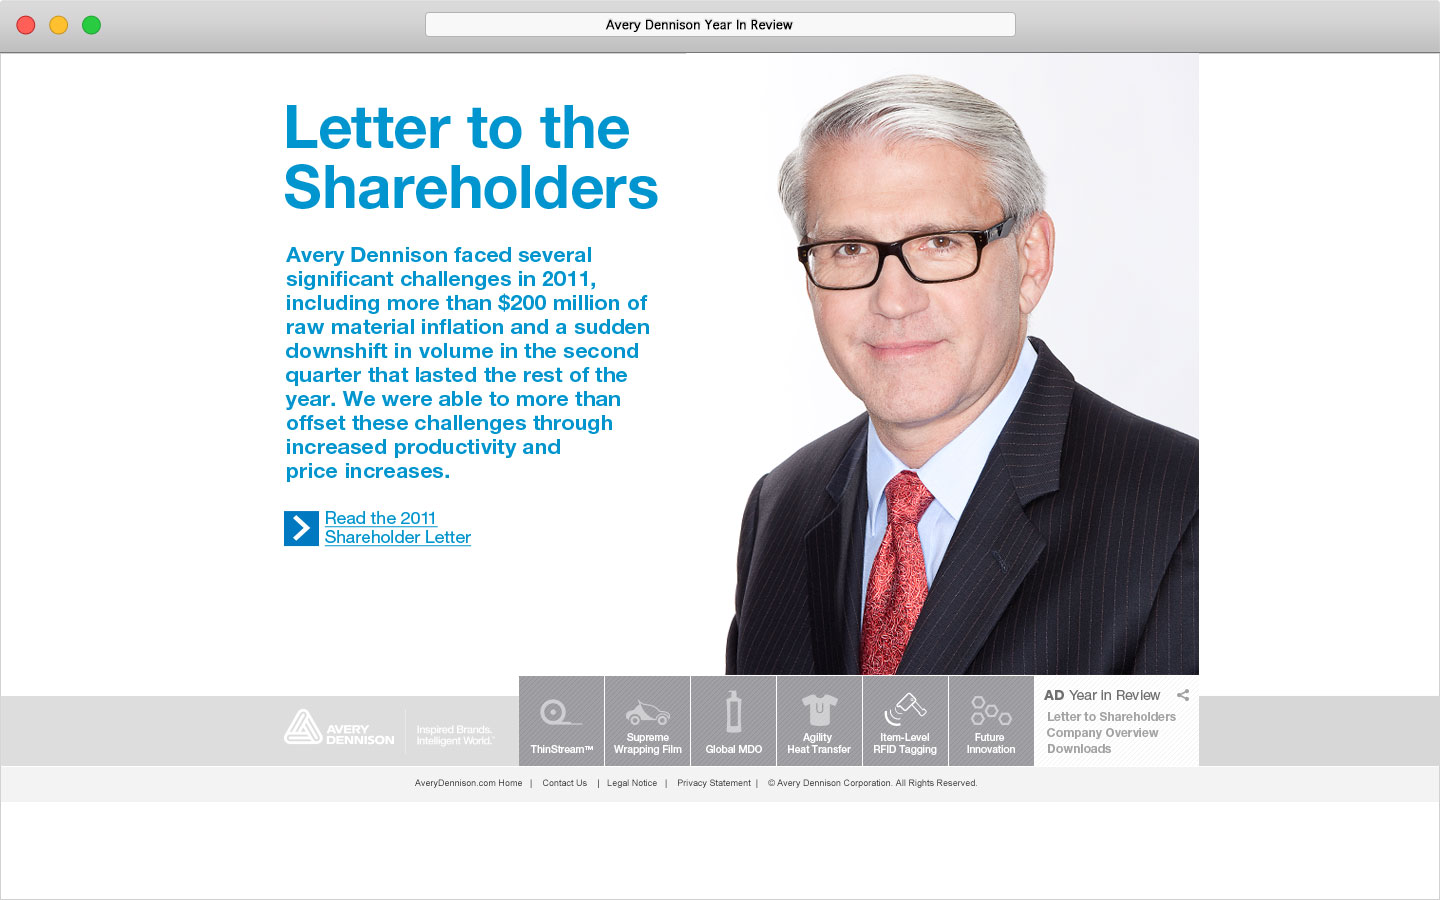 Avery Dennison 2011 Online Year In Review Letter to Shareholders with CEO photo